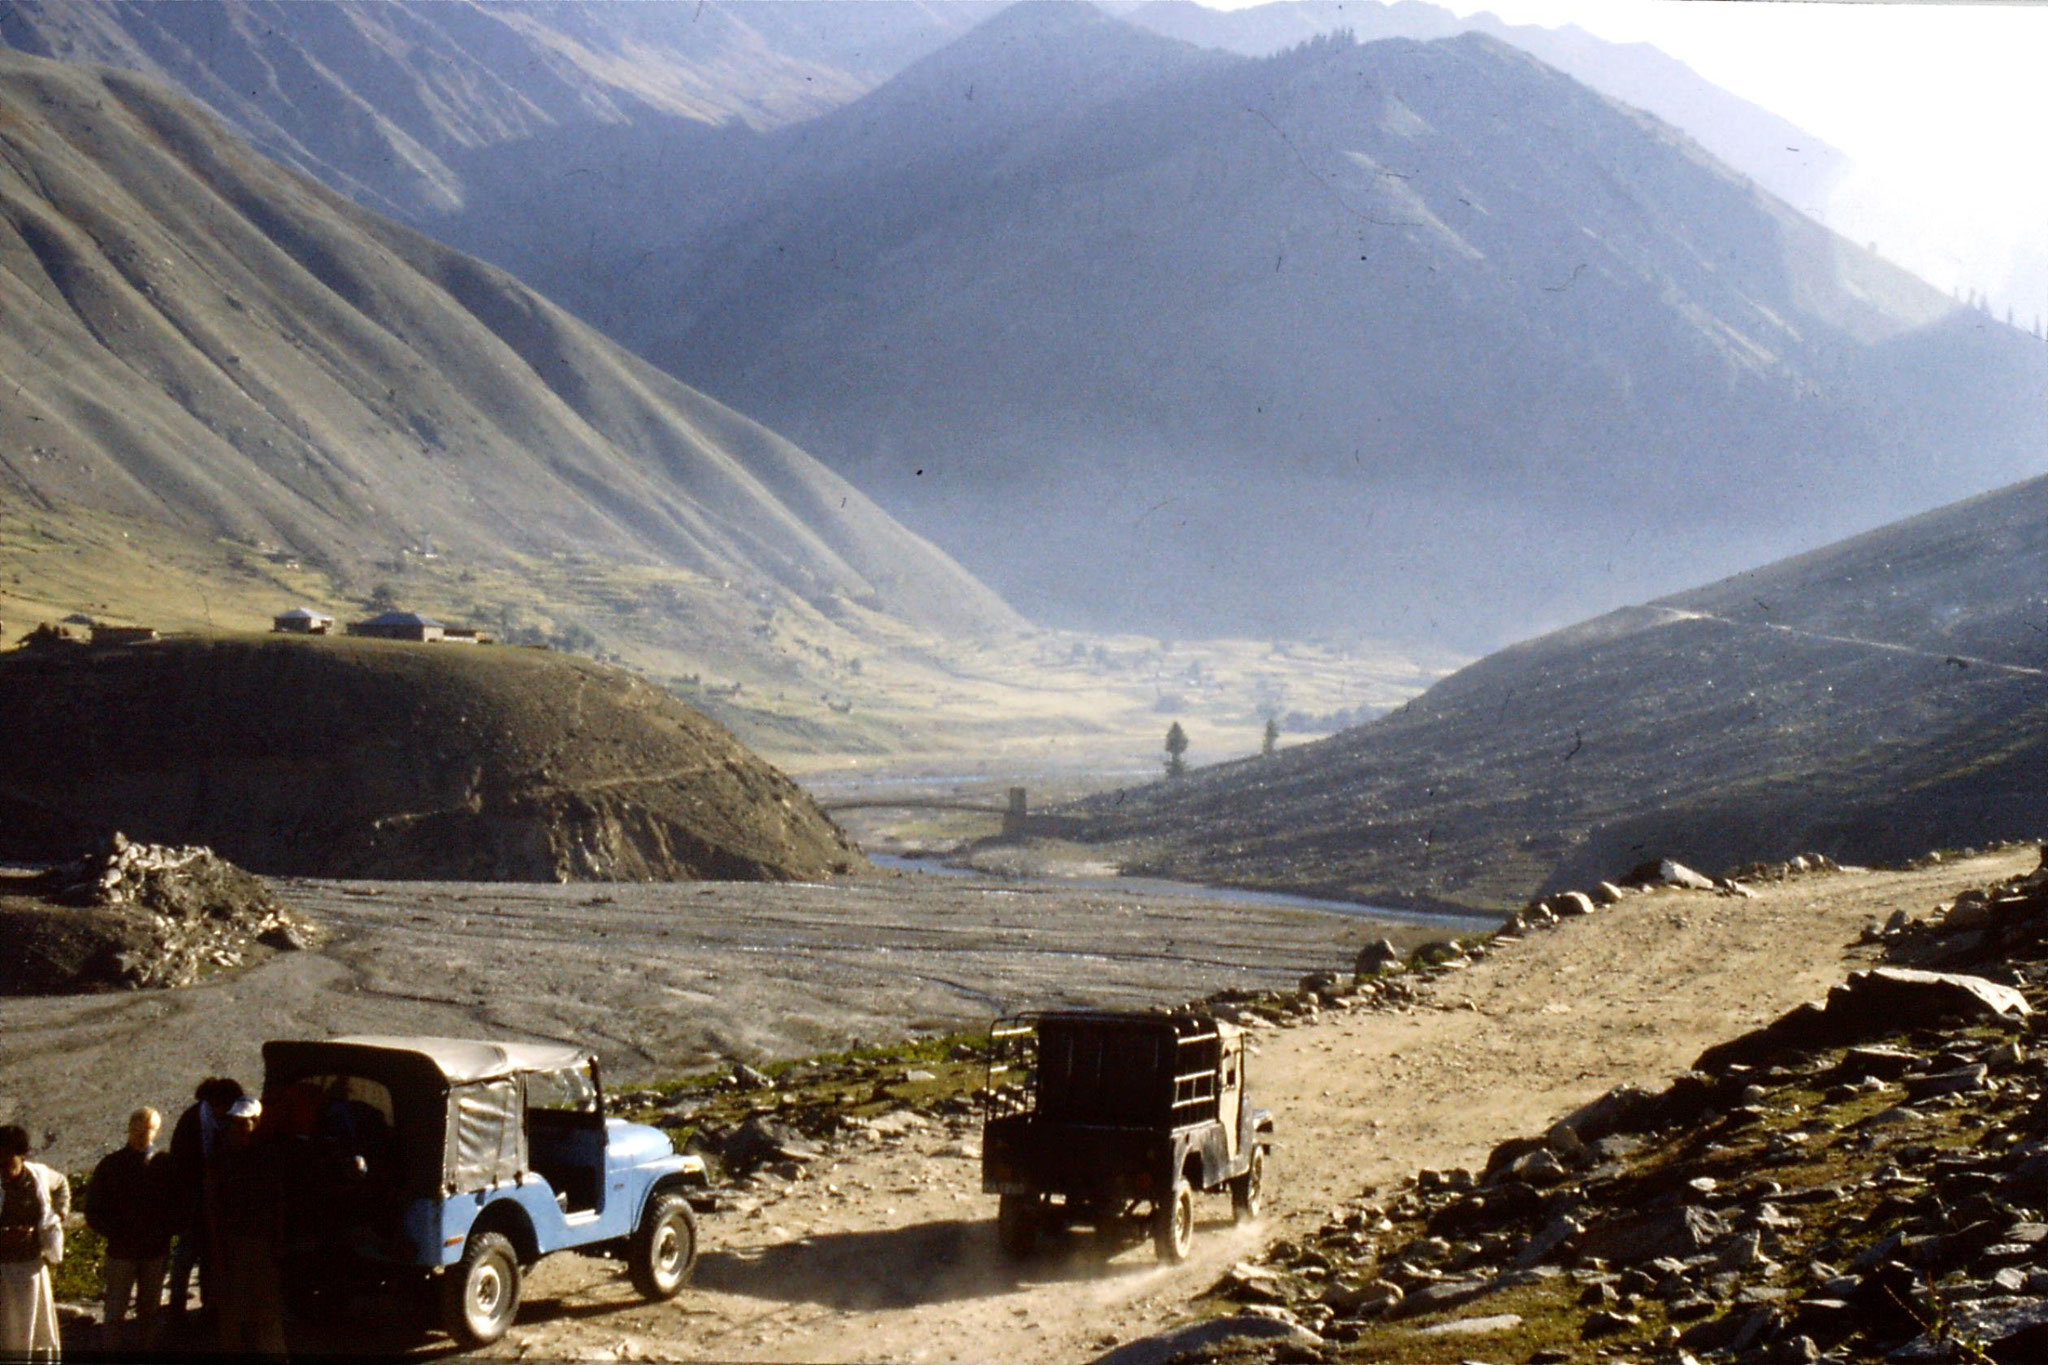 6/10/1989: 14: Kaghan Valley route to Batacundi